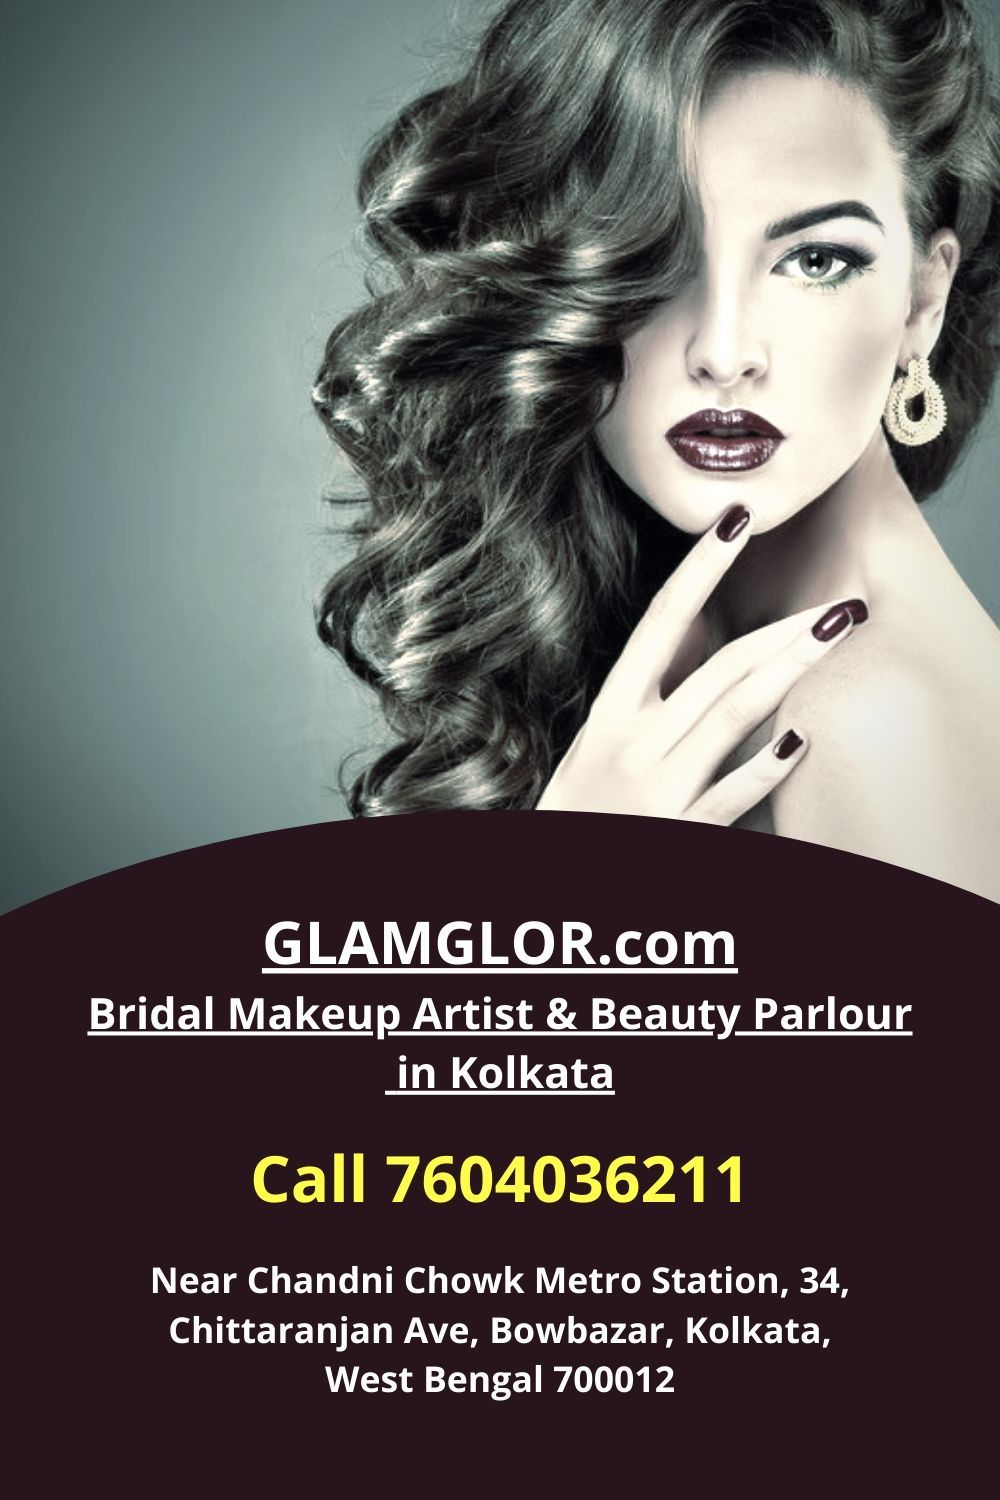 Get Service From One Of The Top Branded Beauty Parlour In Kolkata With Ultimate Beauty Guide Bridal Makeup Artist Beauty Guide Bridal Makeup